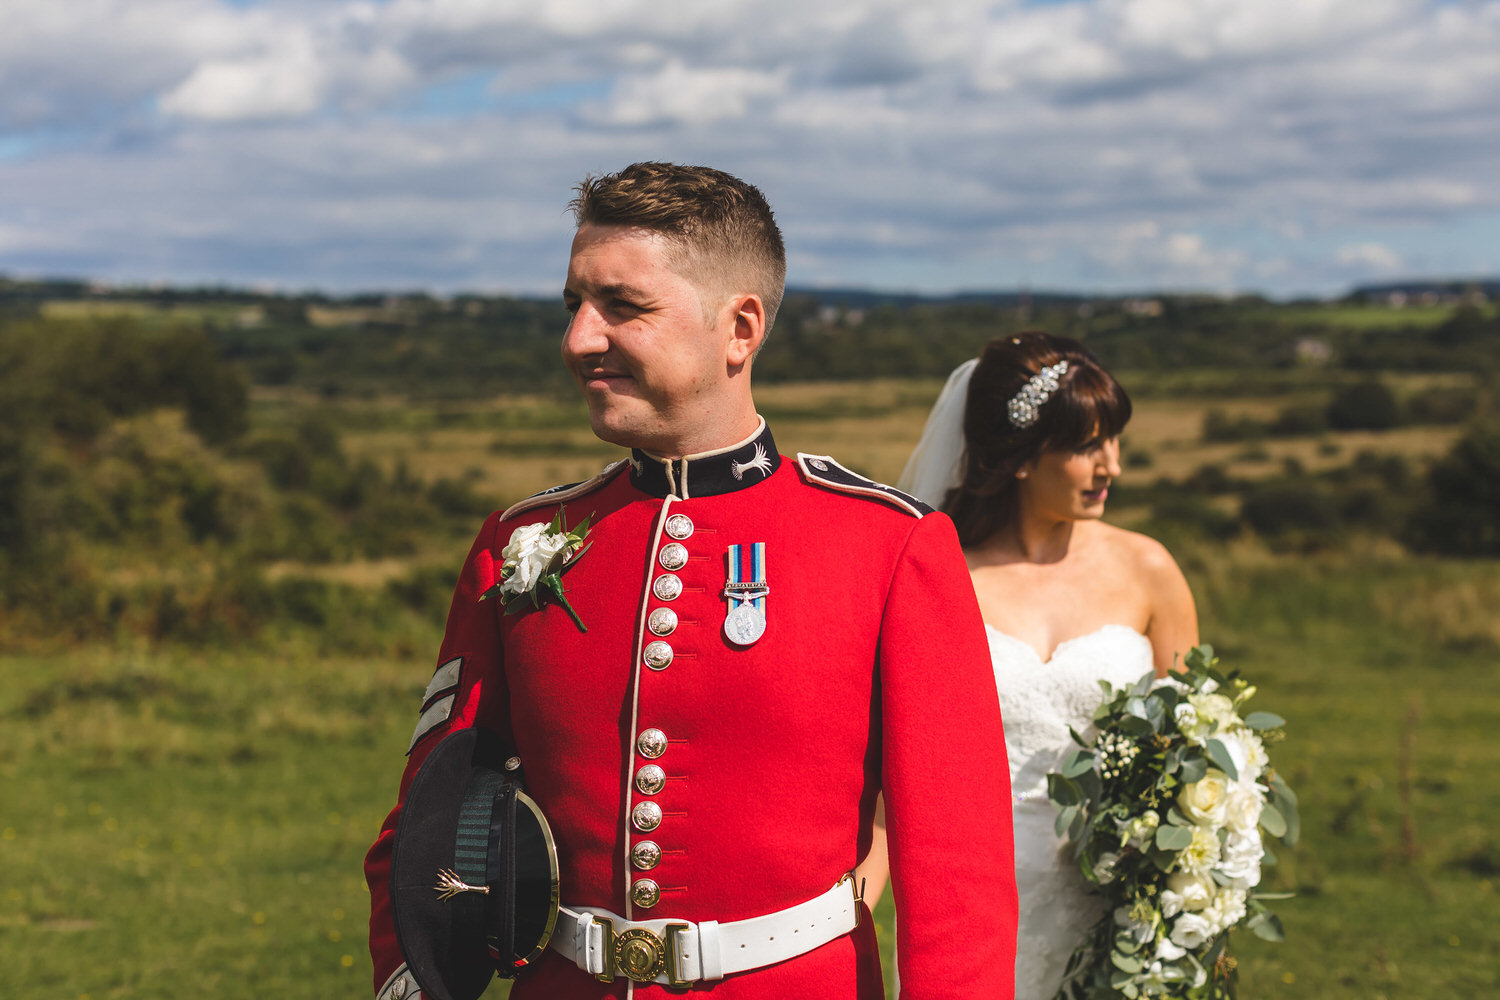 welsh guard and his bride on llantrisant common